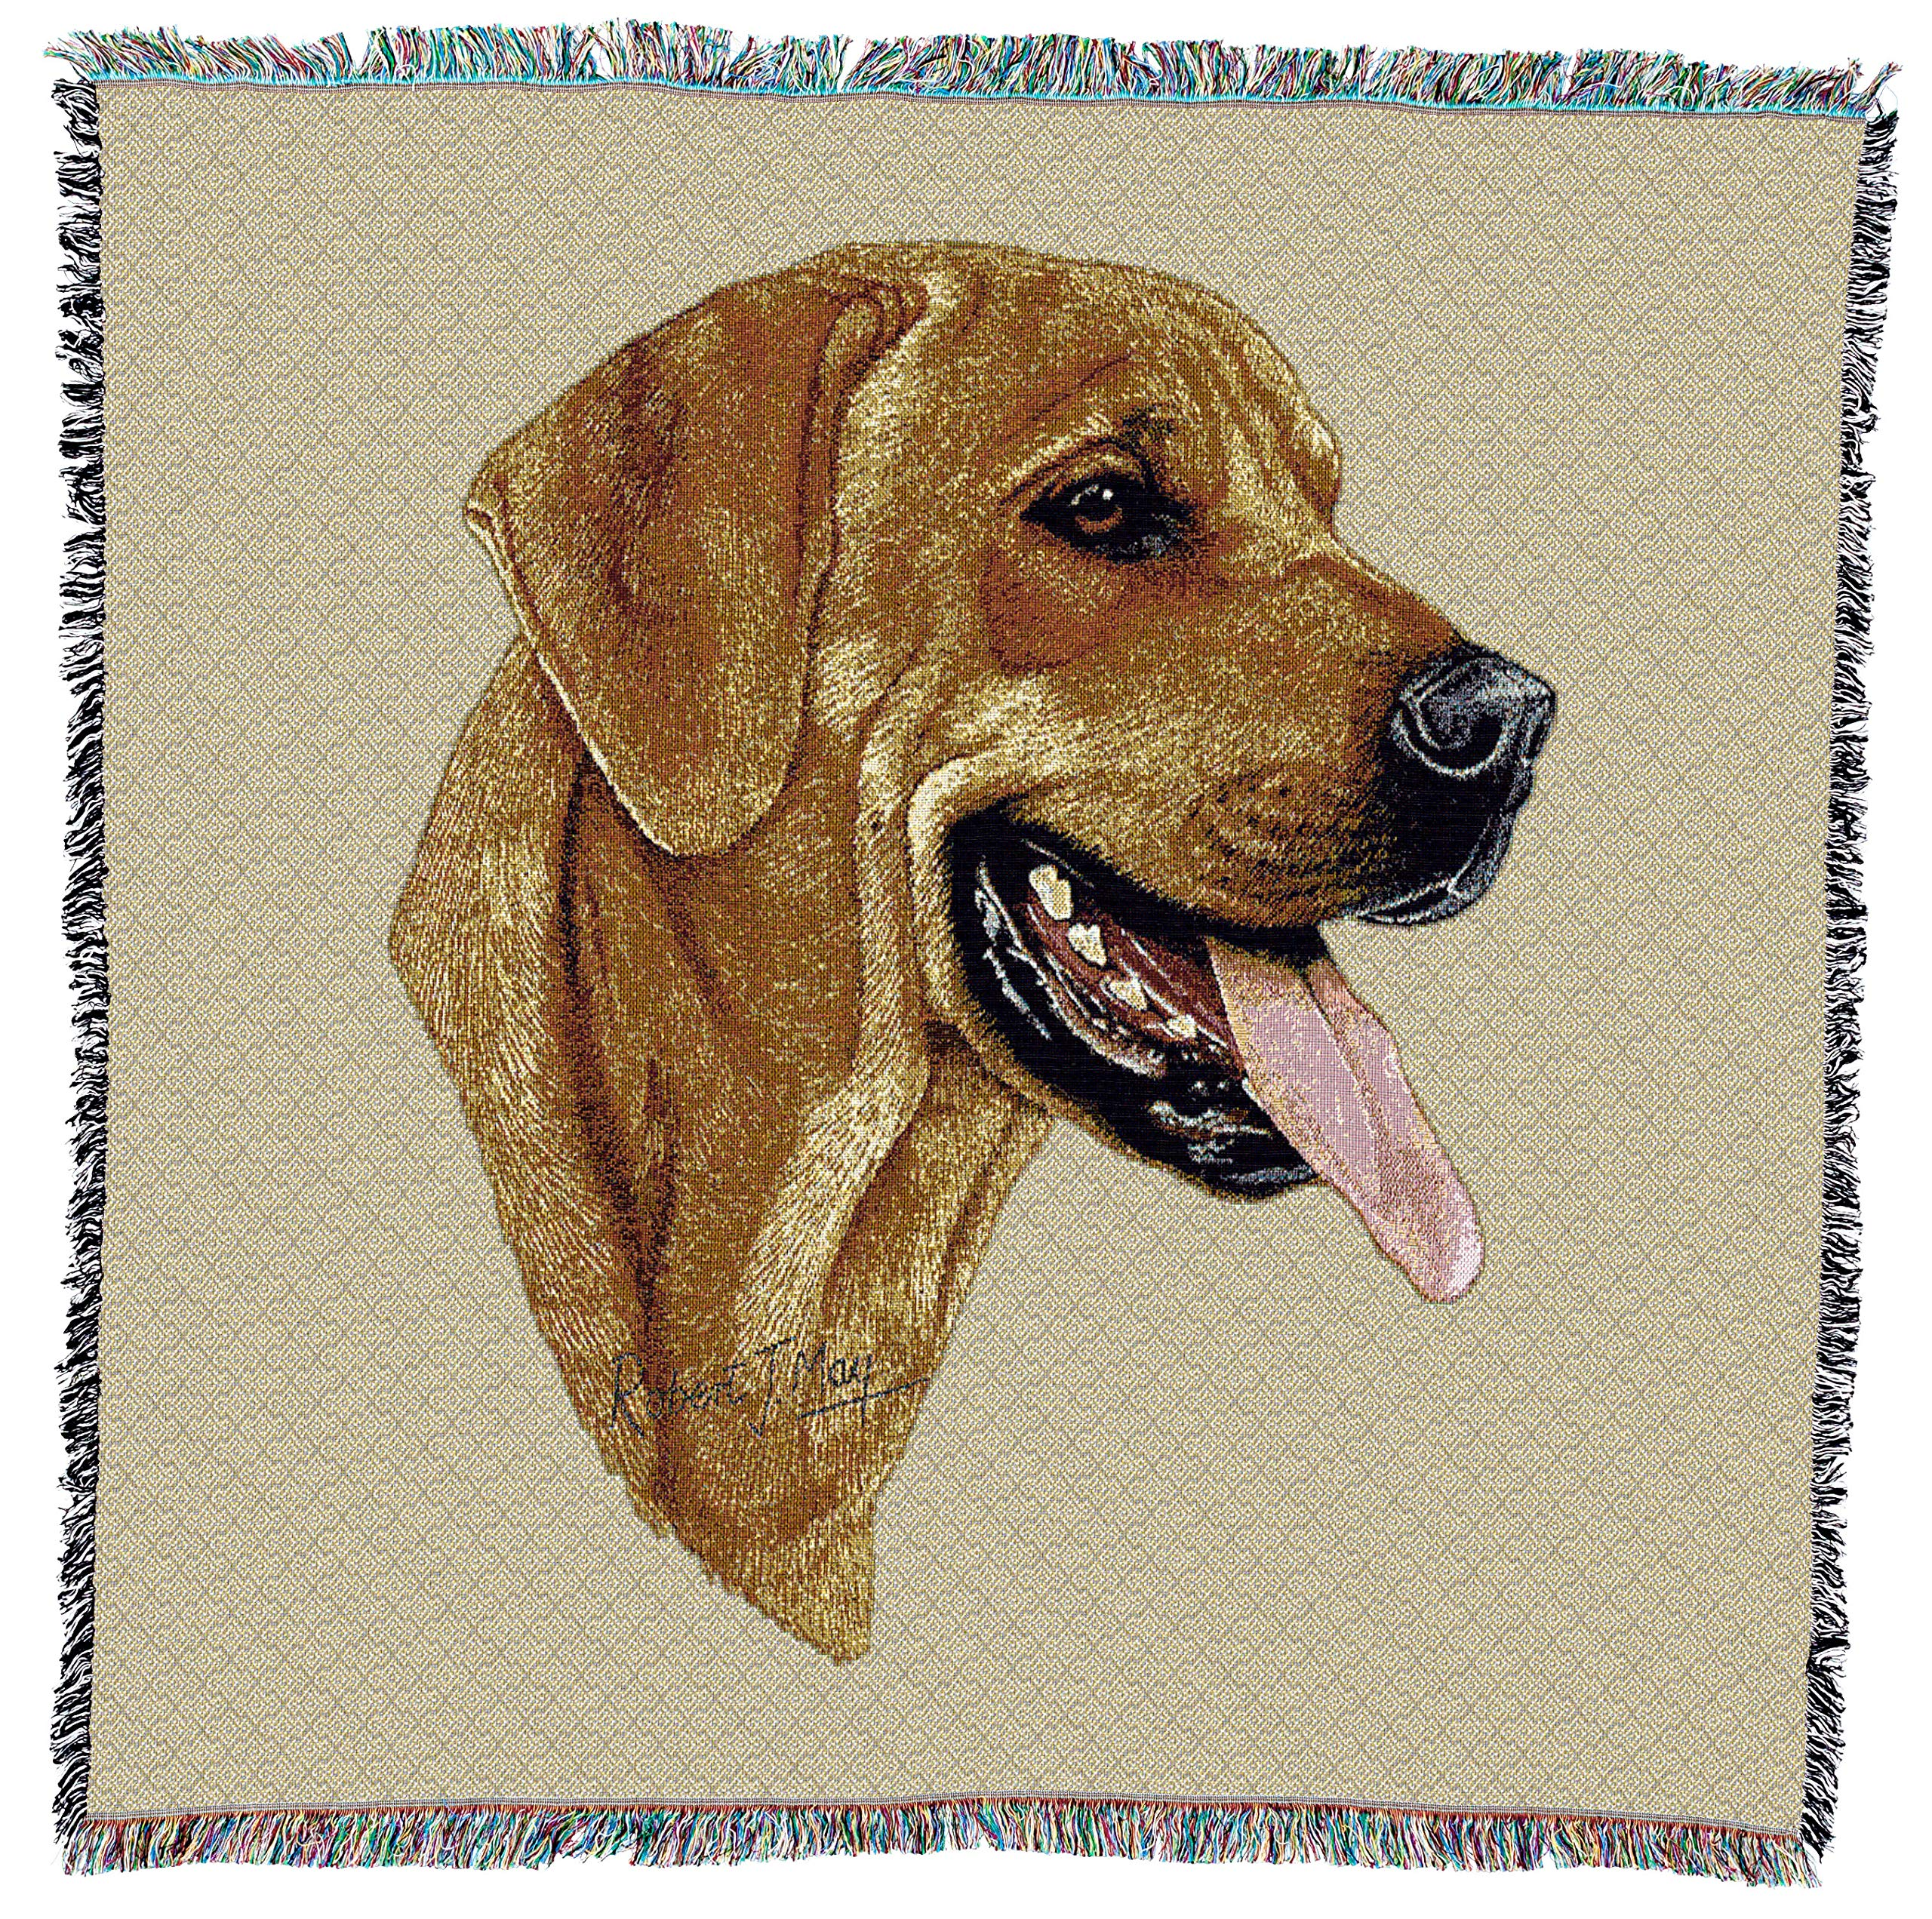 Pure Country Weavers - Rhodesian Ridgeback Woven Throw Blanket with Fringe Cotton. USA Size 54x54